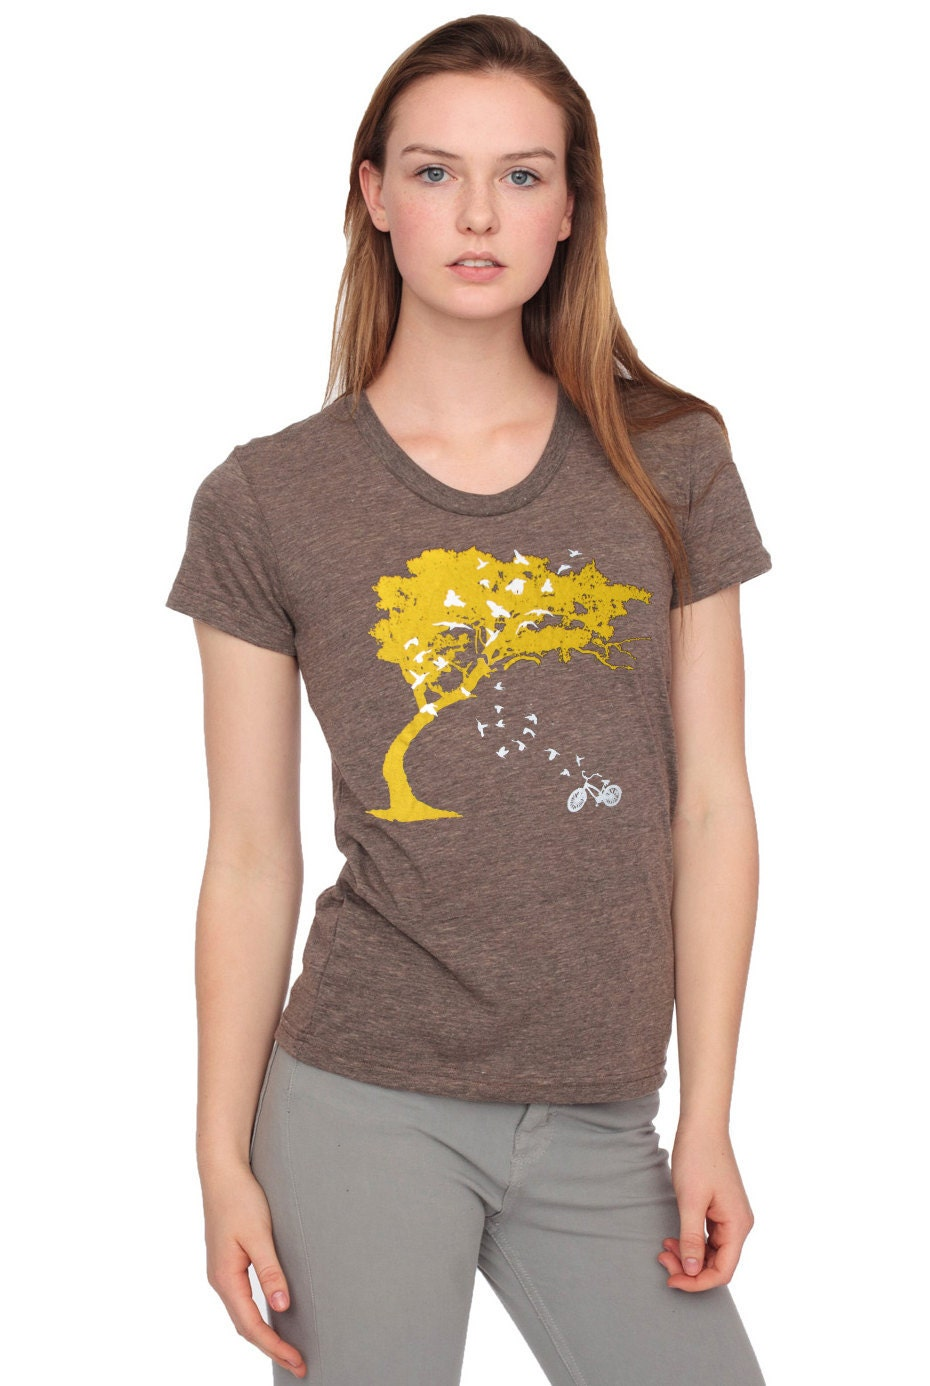 birds bicycle and tree- women's scoop track t shirt american apparel- coffee brown- available in S, M, L WorldWide Shipping